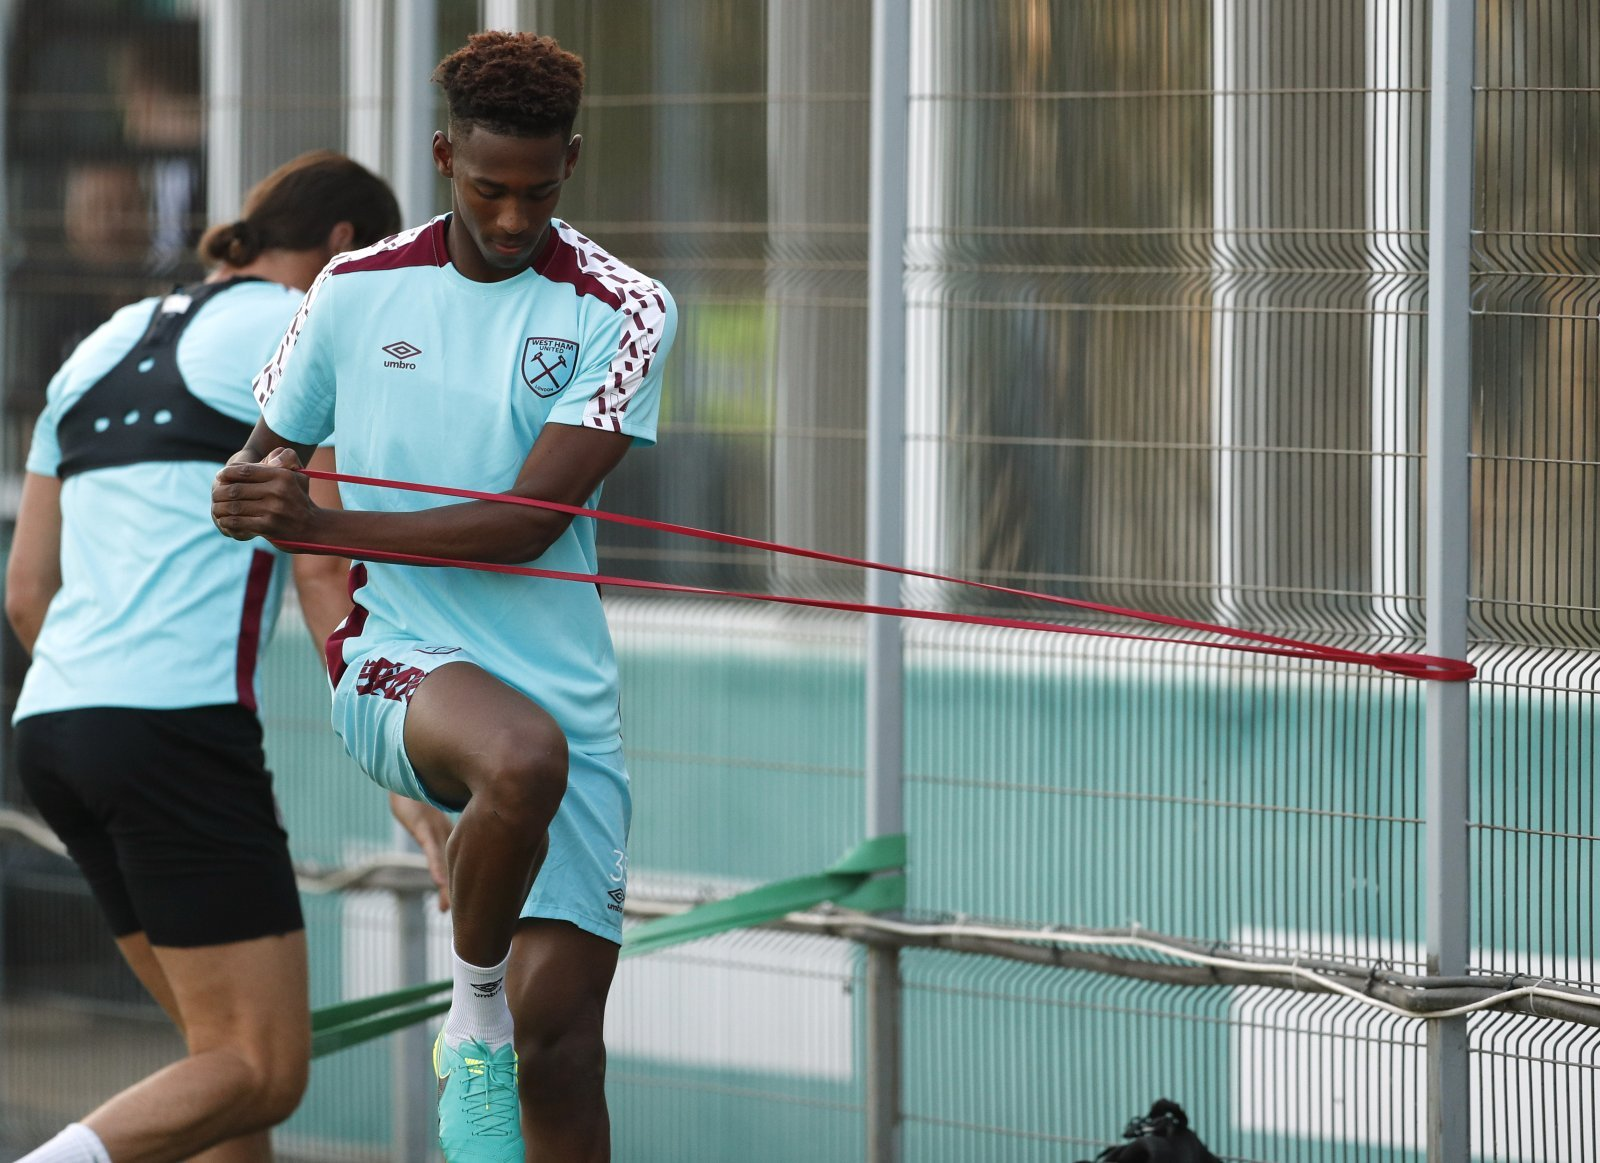 Sheffield Wednesday should seek to land West Ham's Reece Oxford